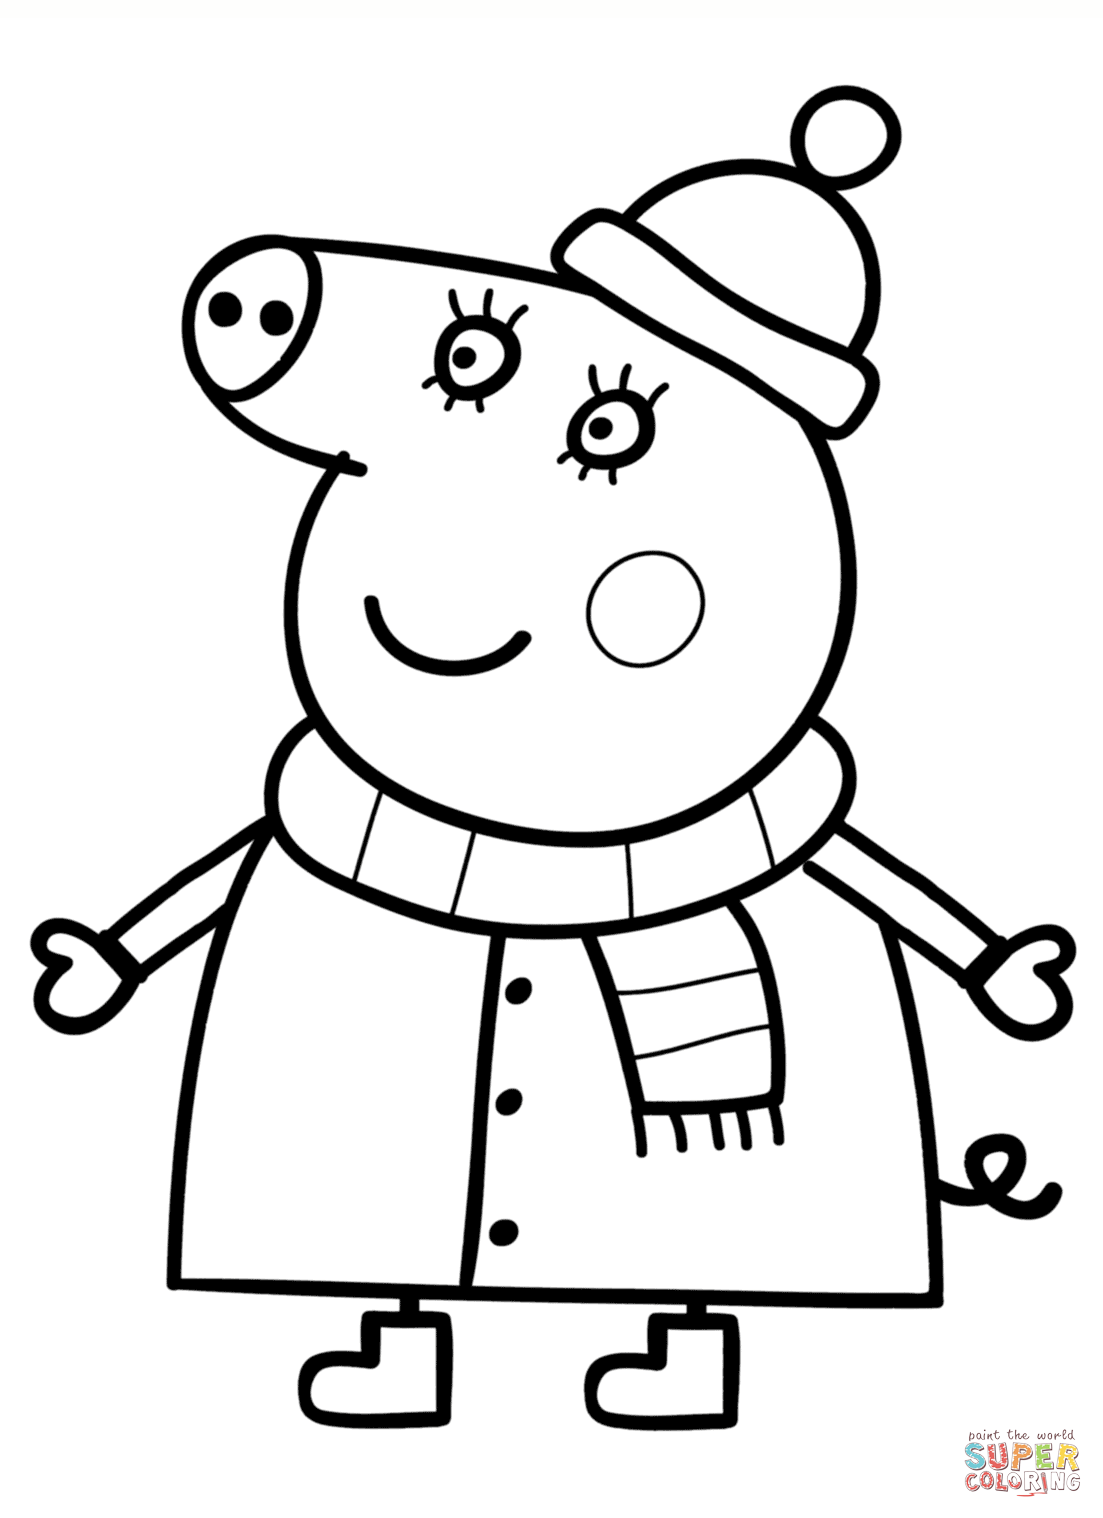 Mummy Pig In Winter Suit Coloring Page